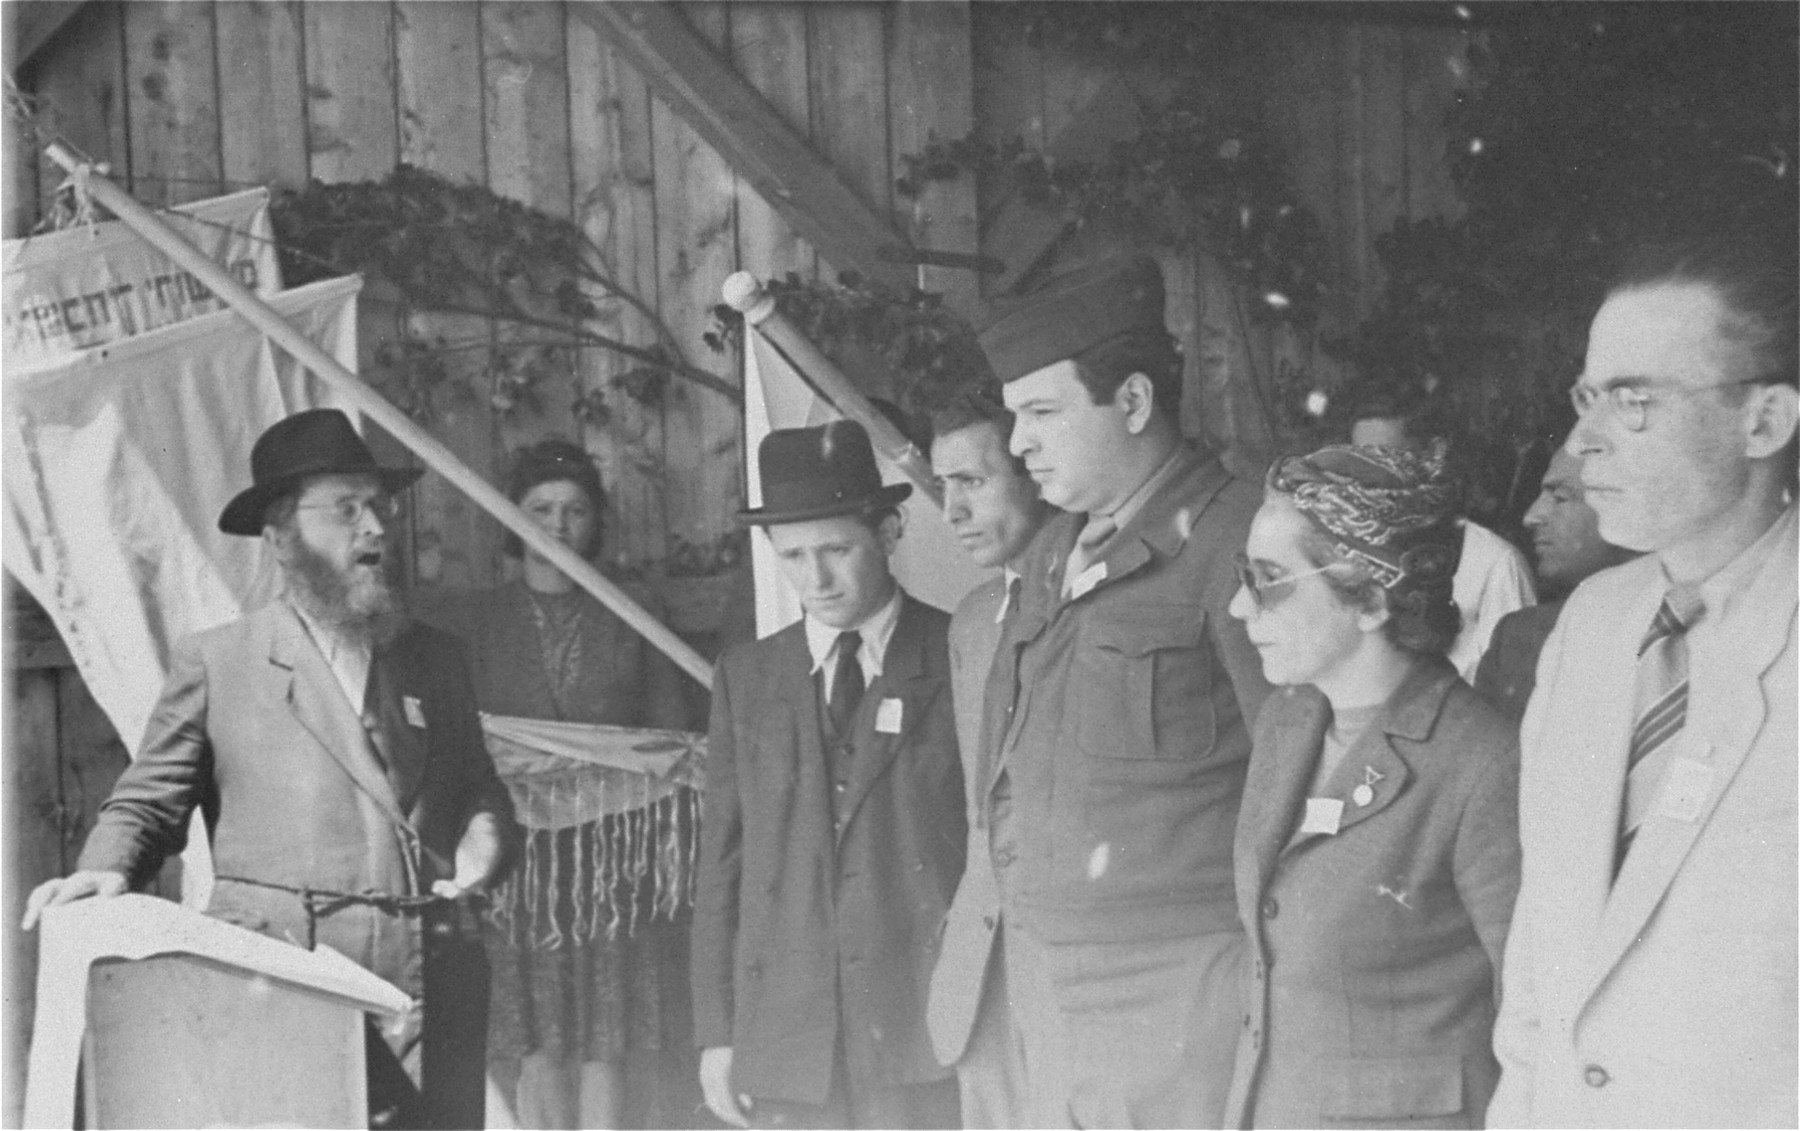 Director Saul Sorrin and other DP camp leaders listen as a cantor sings a hymn at a ceremony in the Neu Freimann displaced persons camp.